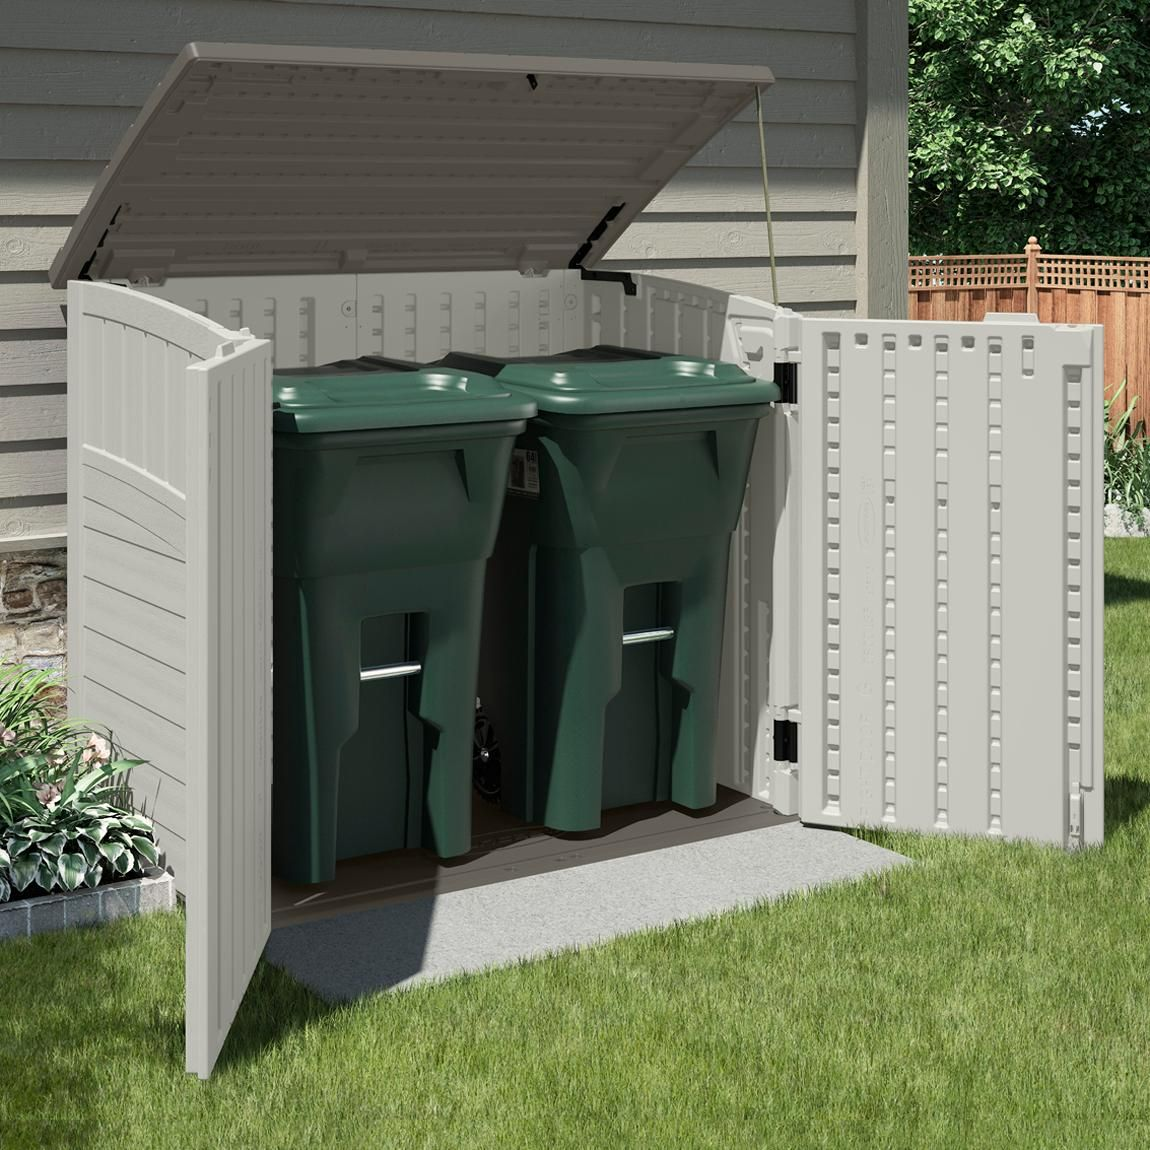 an outdoor storage shed is ideal for storing garbage cans lawn